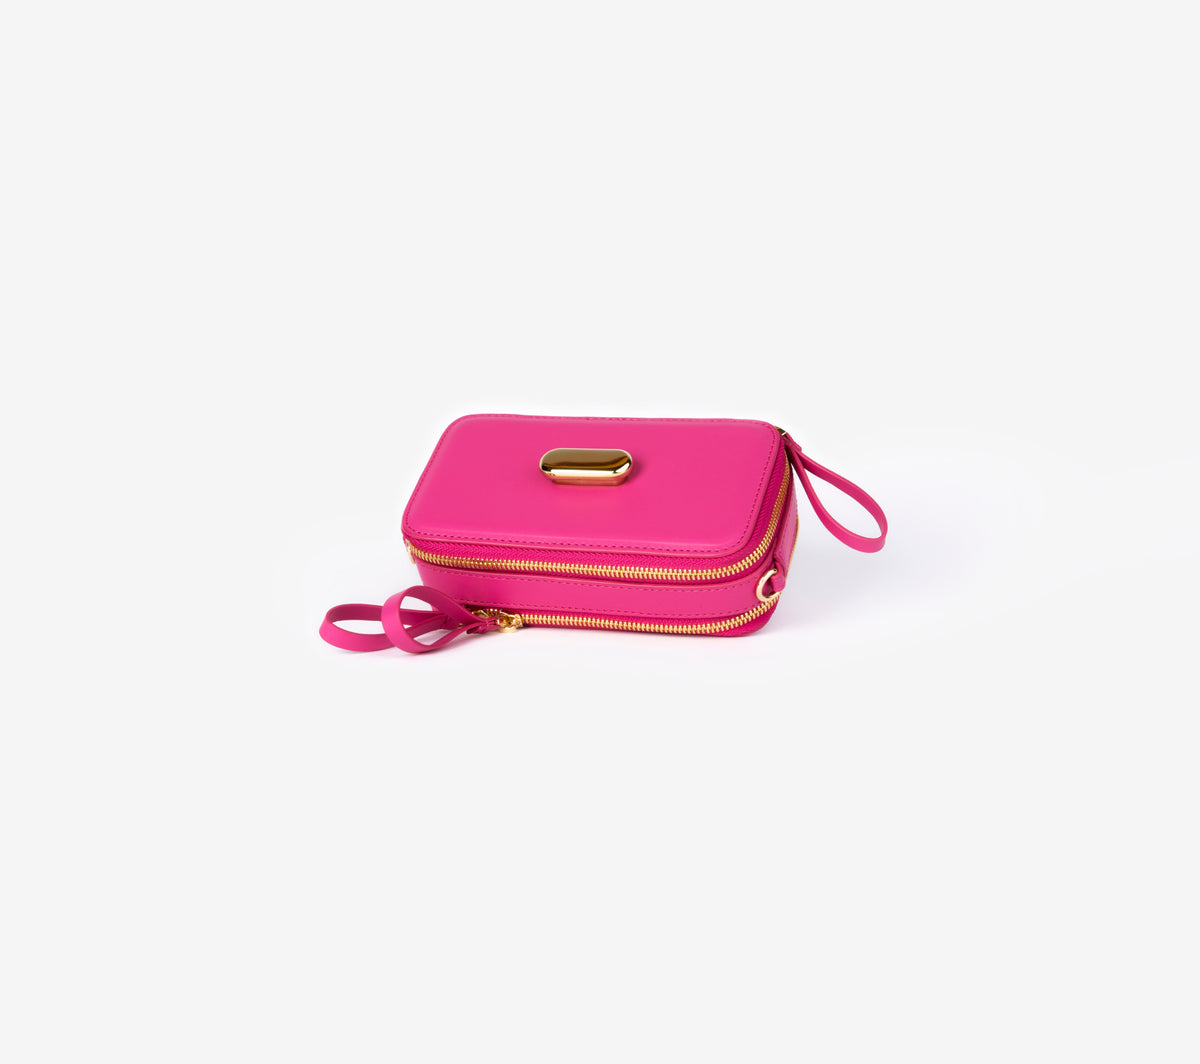 Essentials Bag in Hot Pink